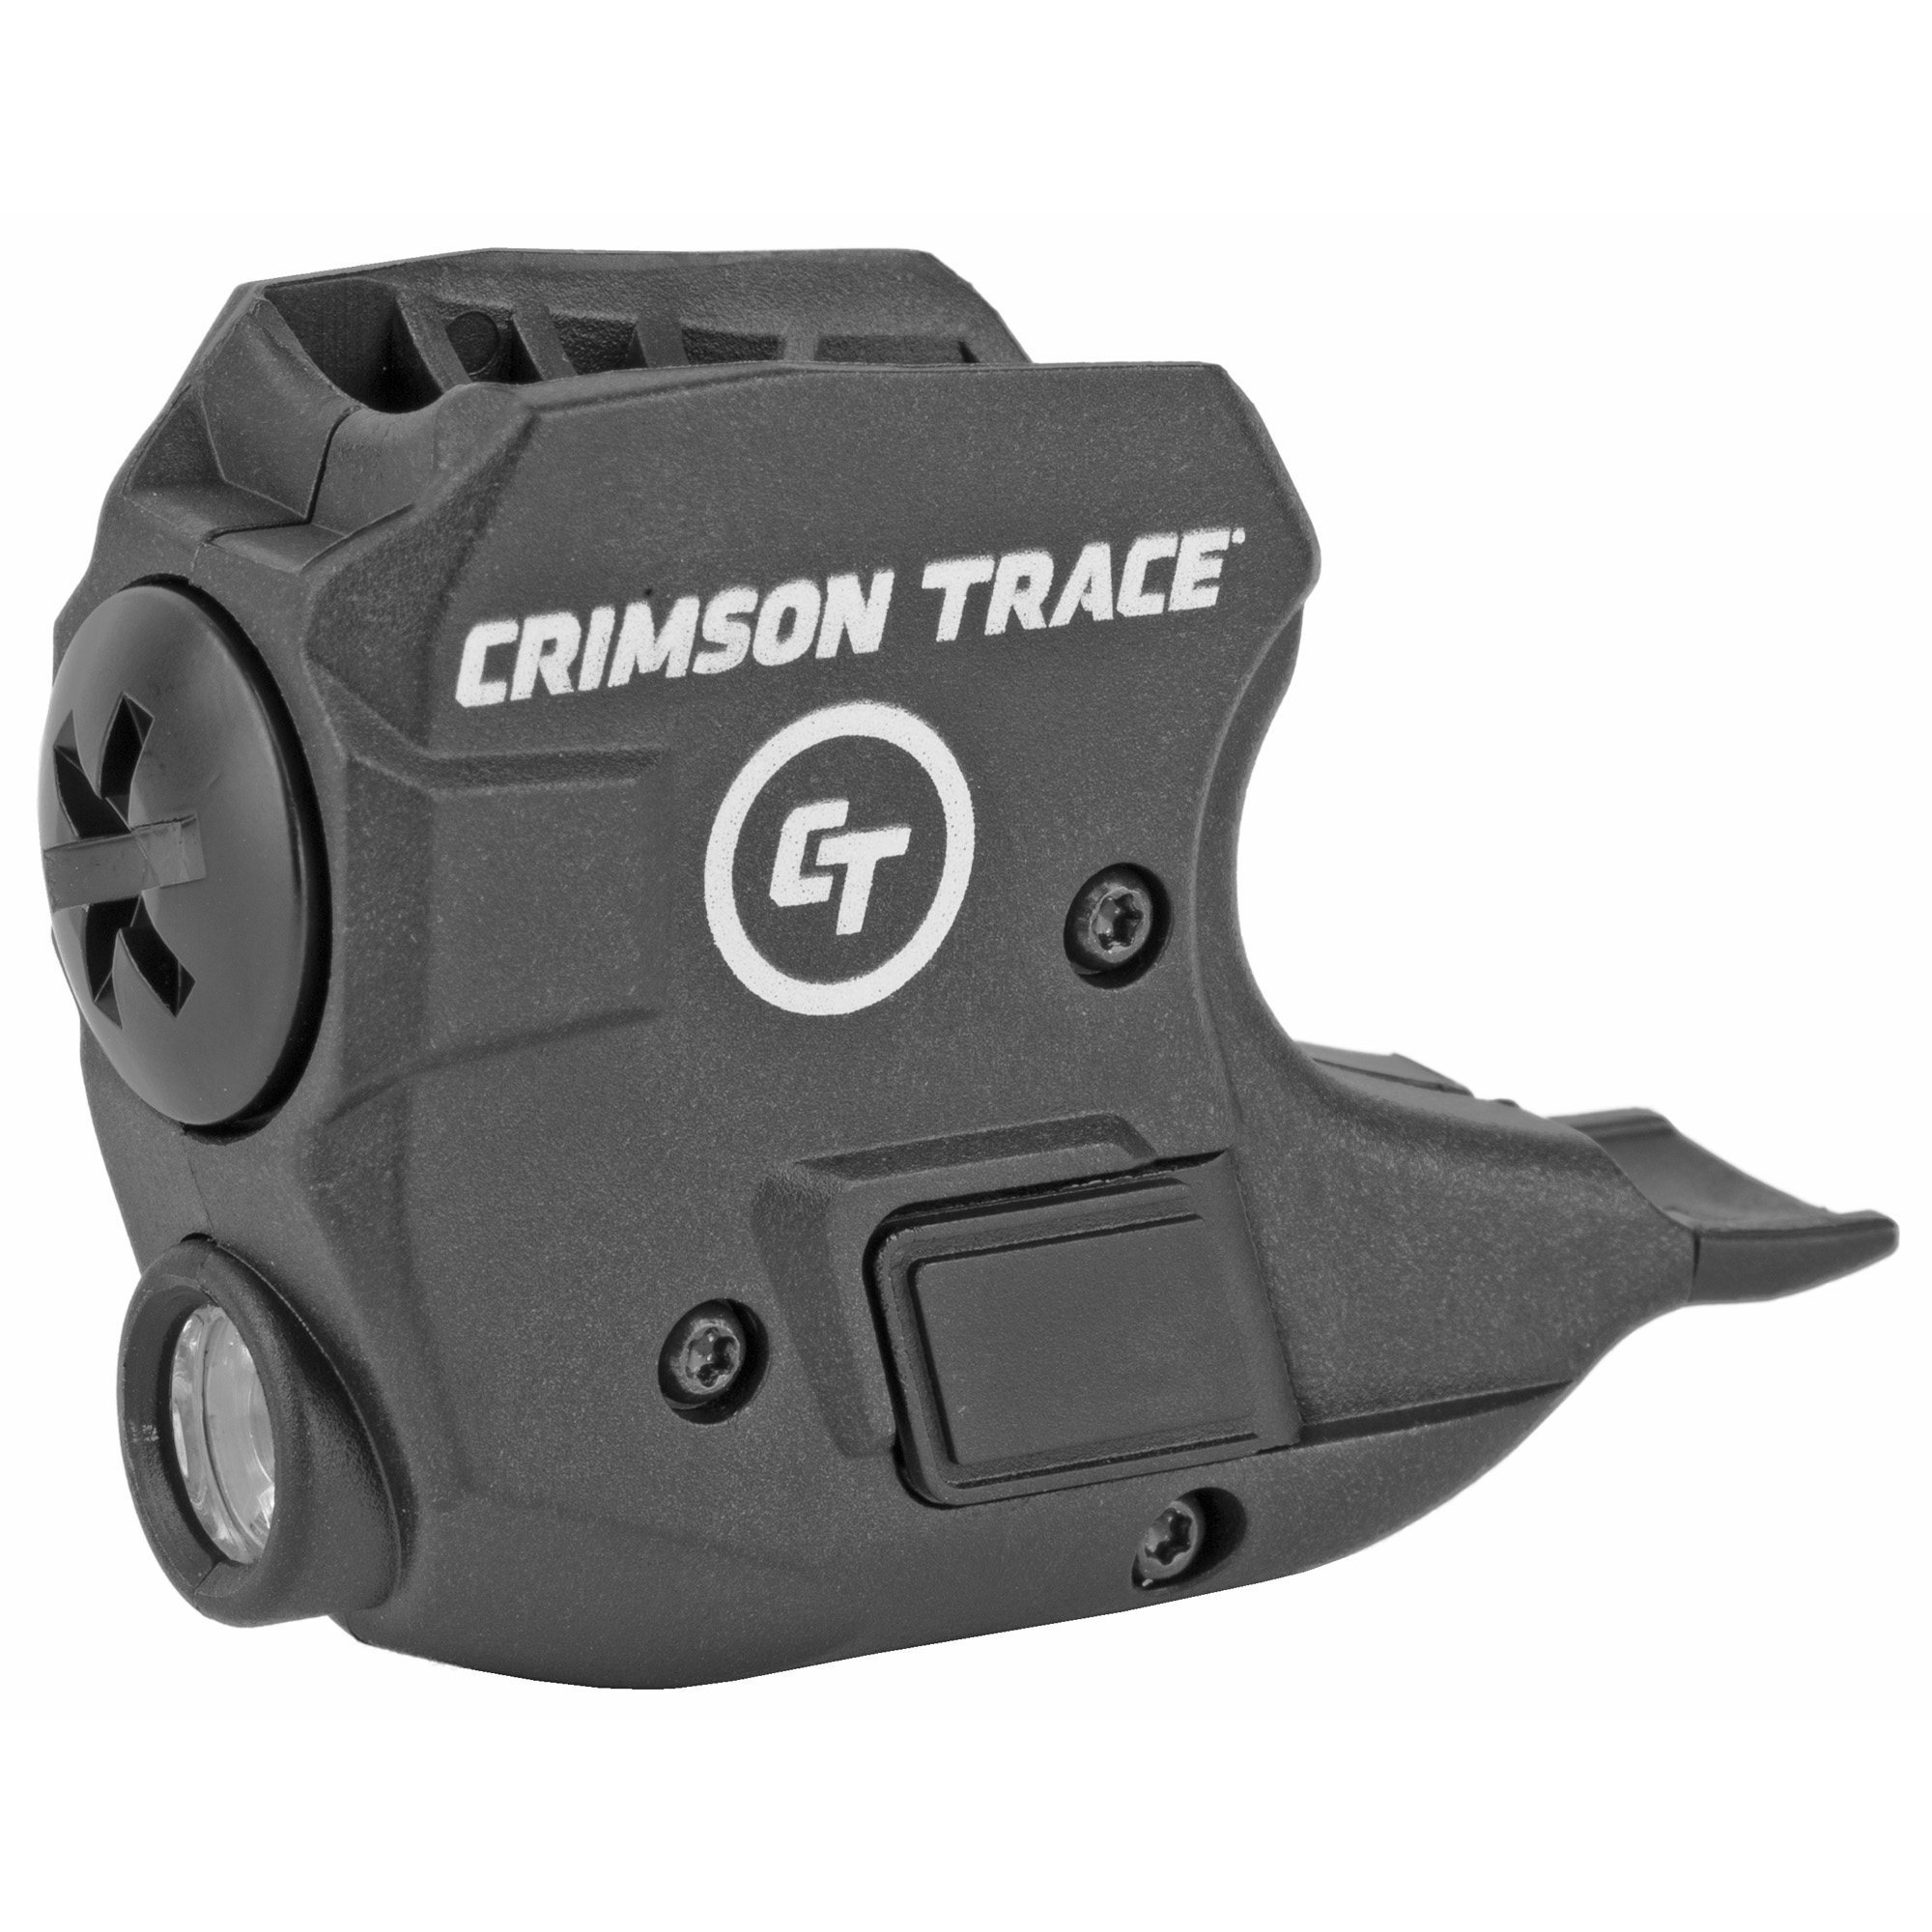 """The LTG-778 Lightguard(TM) is a 95 Lumen LED White Light designed to securely fit around the trigger guard of Ruger(R) LCP II pistols. Featuring ambidextrous Instant Activation(TM) with Constant and Momentary modes"""" the LTG-778 offers over one (1) hour of illumination with two (2) 1/3N batteries (included). With ruggedized polymer construction and a rapid change battery cap"""" this tactical light offers effective illumination for LCP II owners. A best-in-class weapon mounted light from the brand you trust for personal protection optics."""